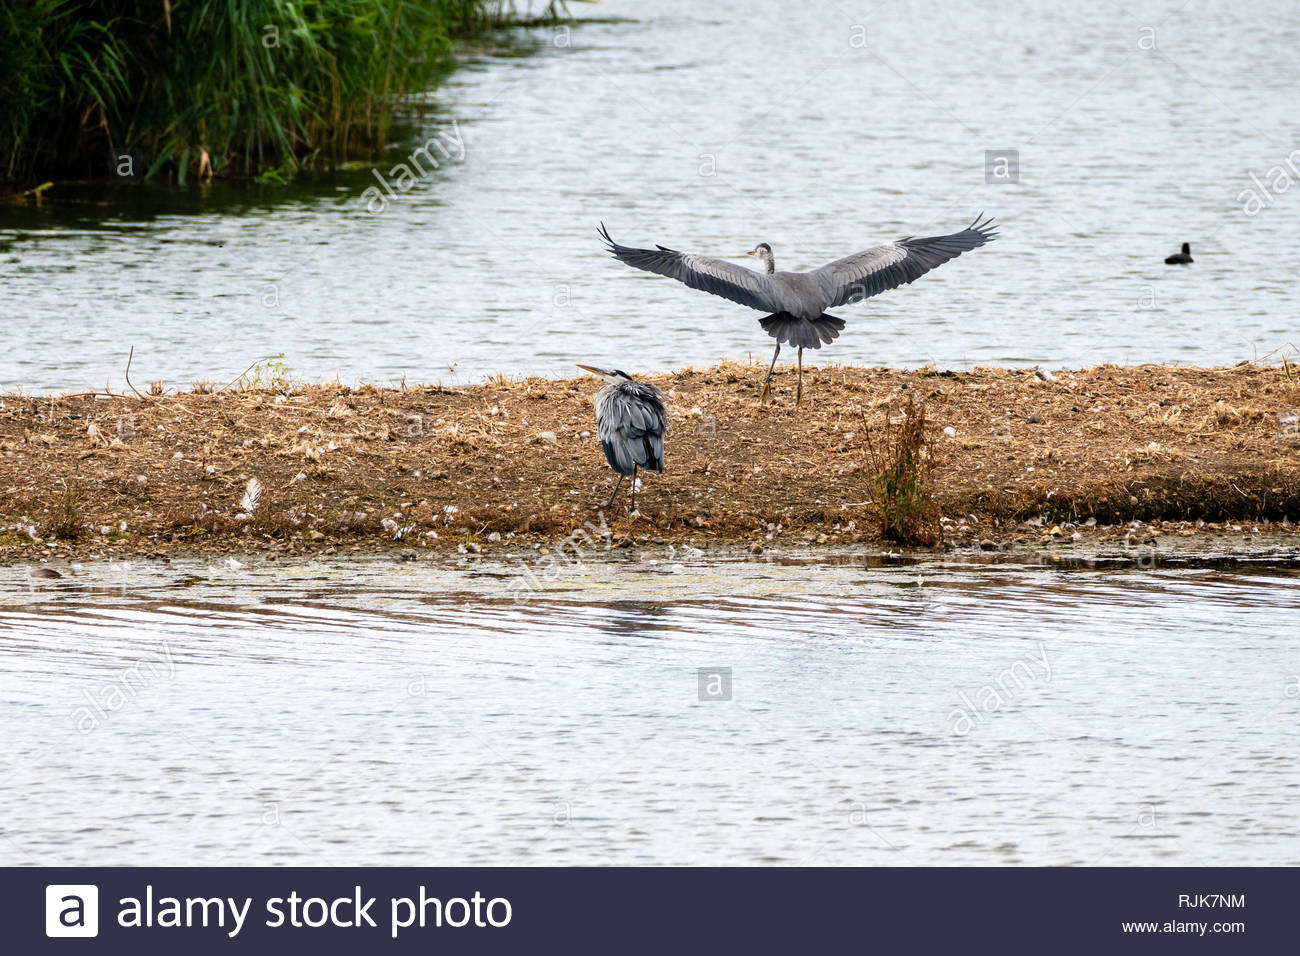 Grey Heron (Ardea cinerea) coming in to land, startling another, taken in London Wetland Centre, United Kingdom - Stock Image